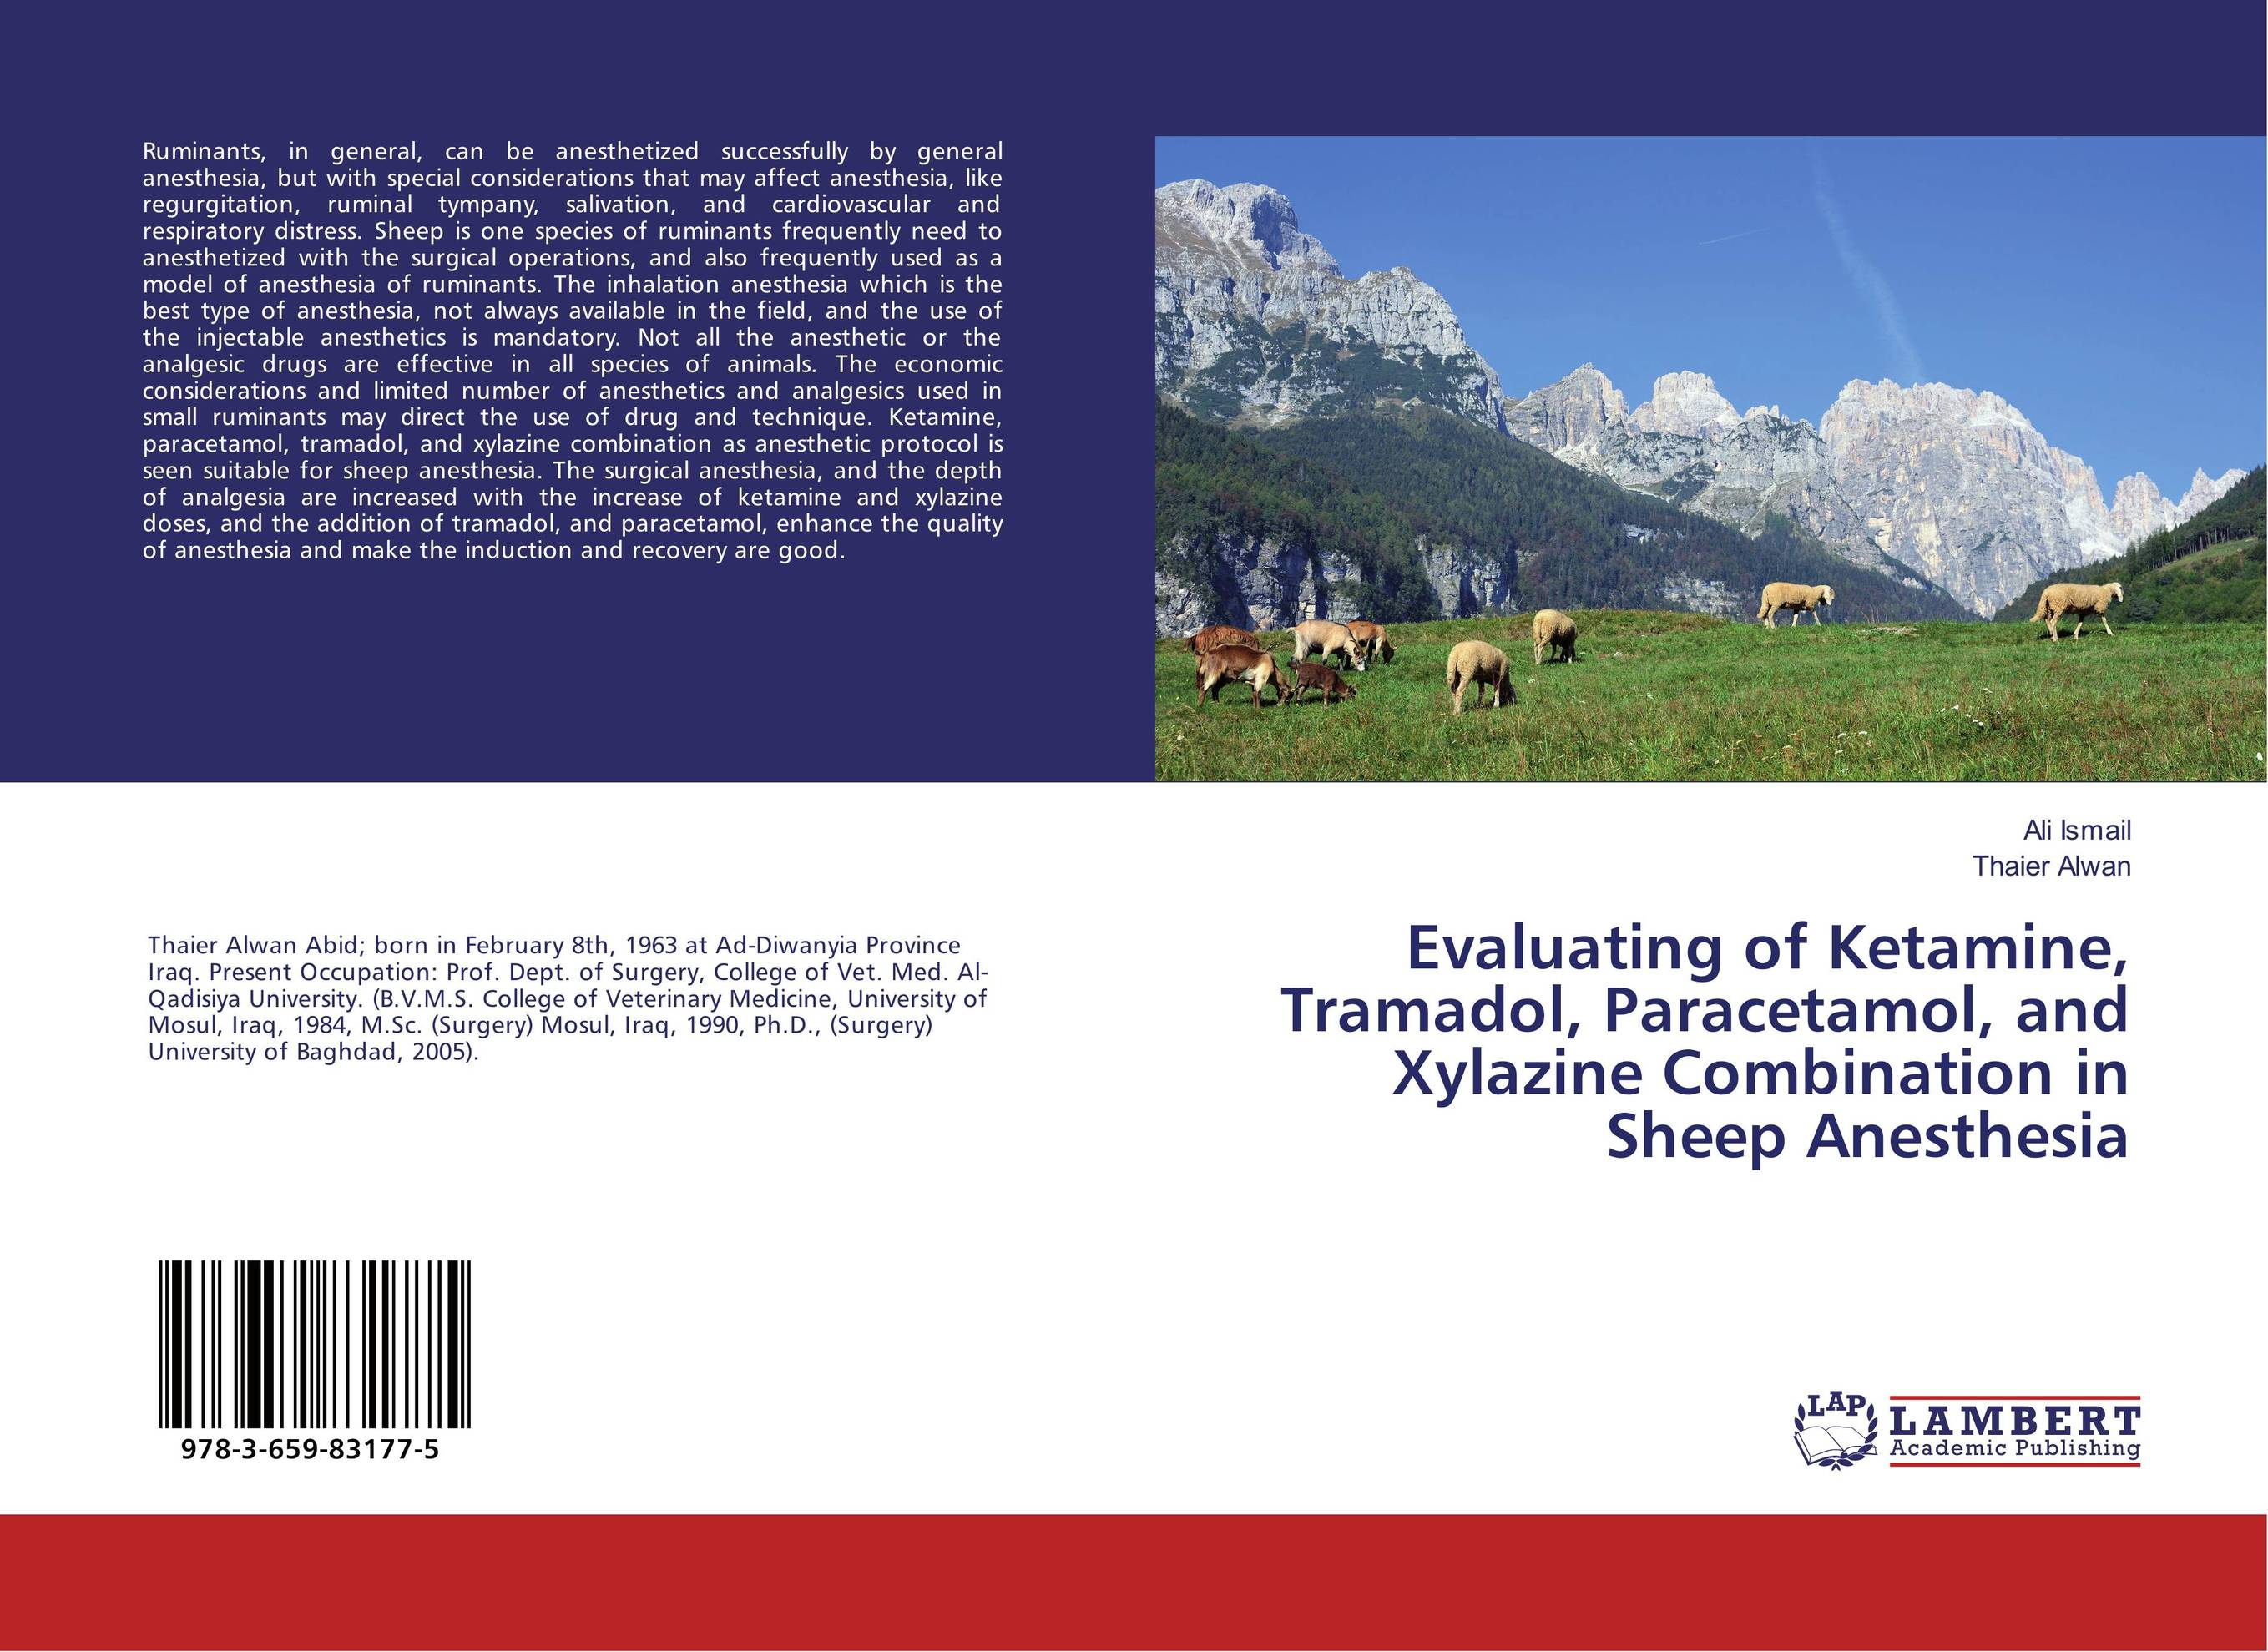 Evaluating of Ketamine, Tramadol, Paracetamol, and Xylazine Combination in Sheep Anesthesia dilbag singh gill evaluating overheads of integrated multilevel checkpointing algorithms